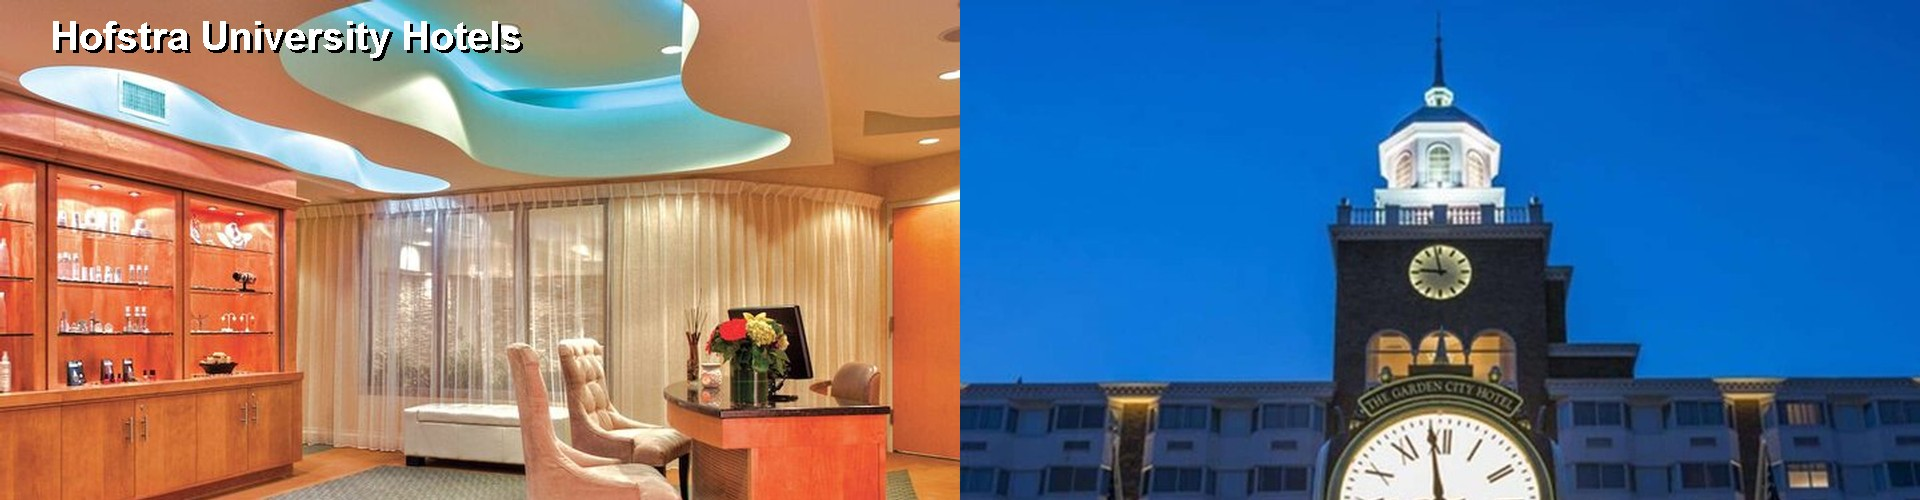 5 Best Hotels near Hofstra University